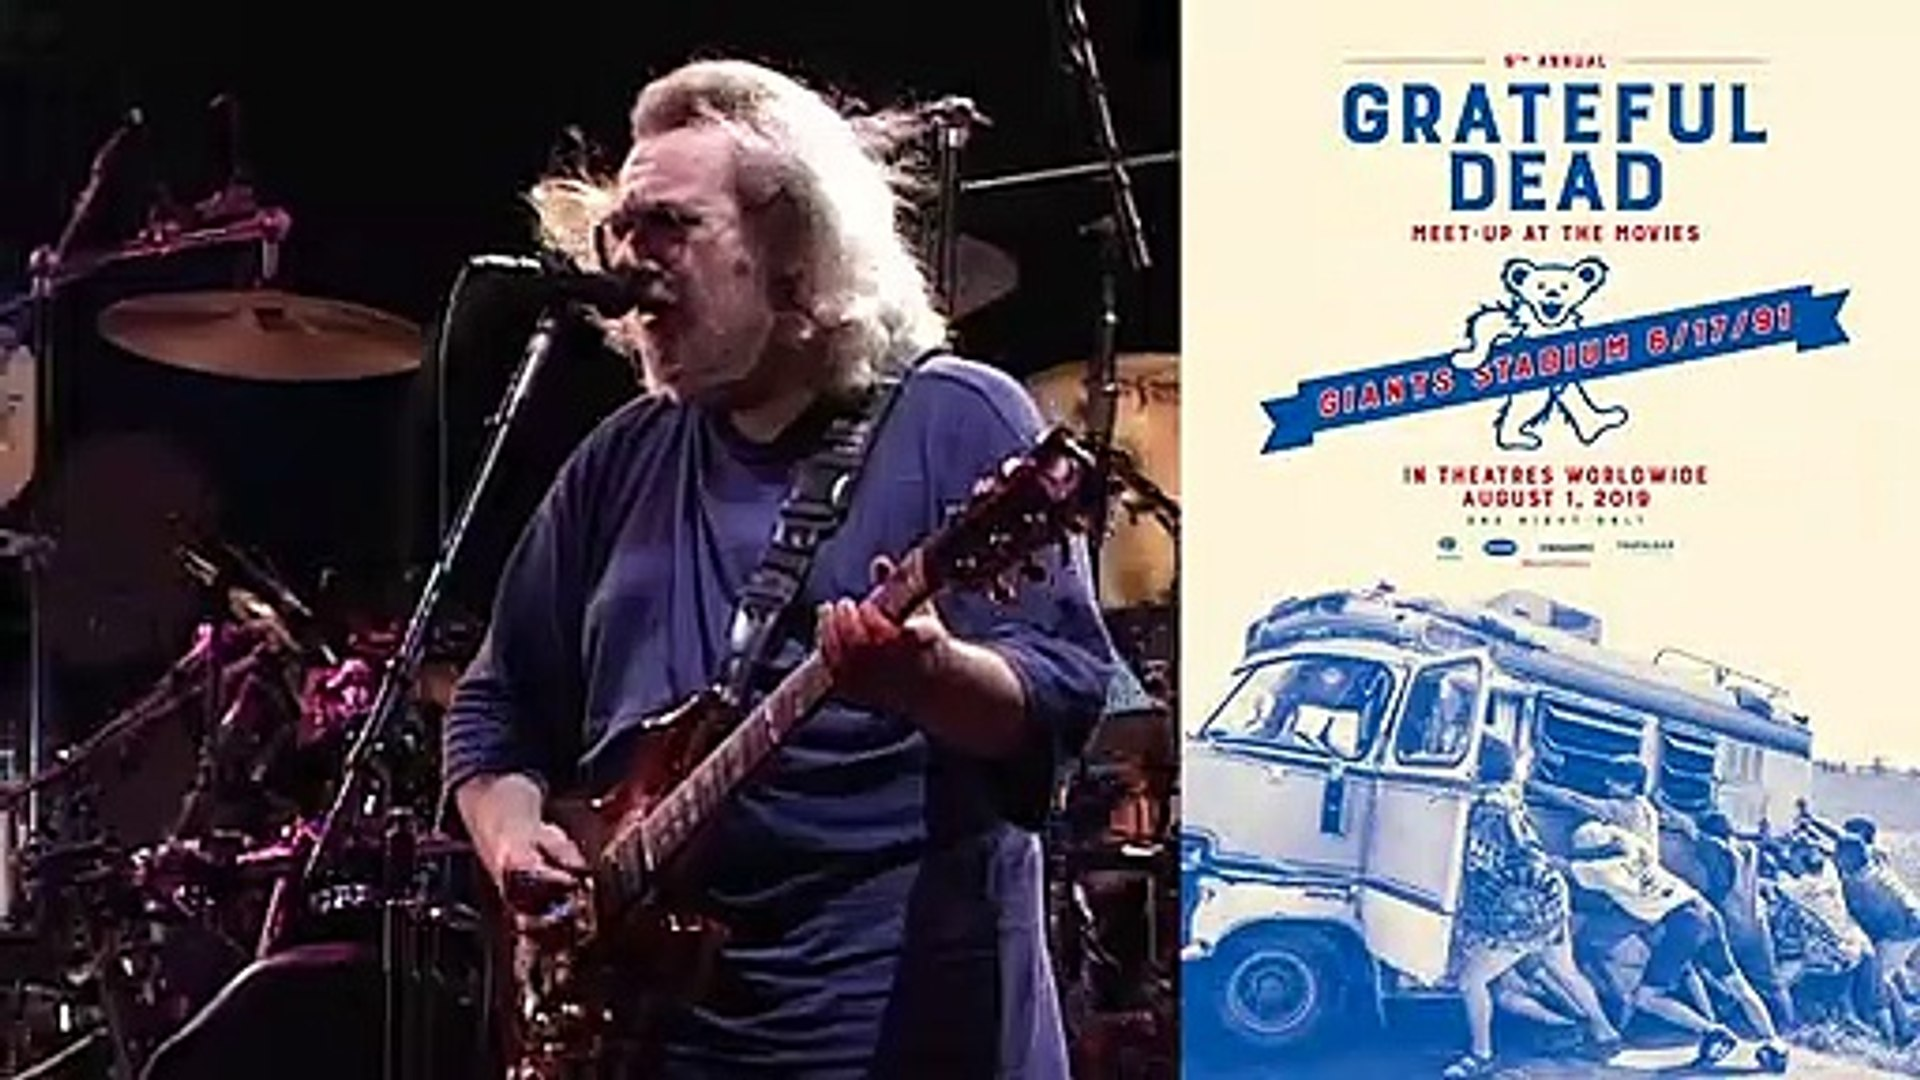 Grateful Dead Meet-Up At The Movies - Trailer